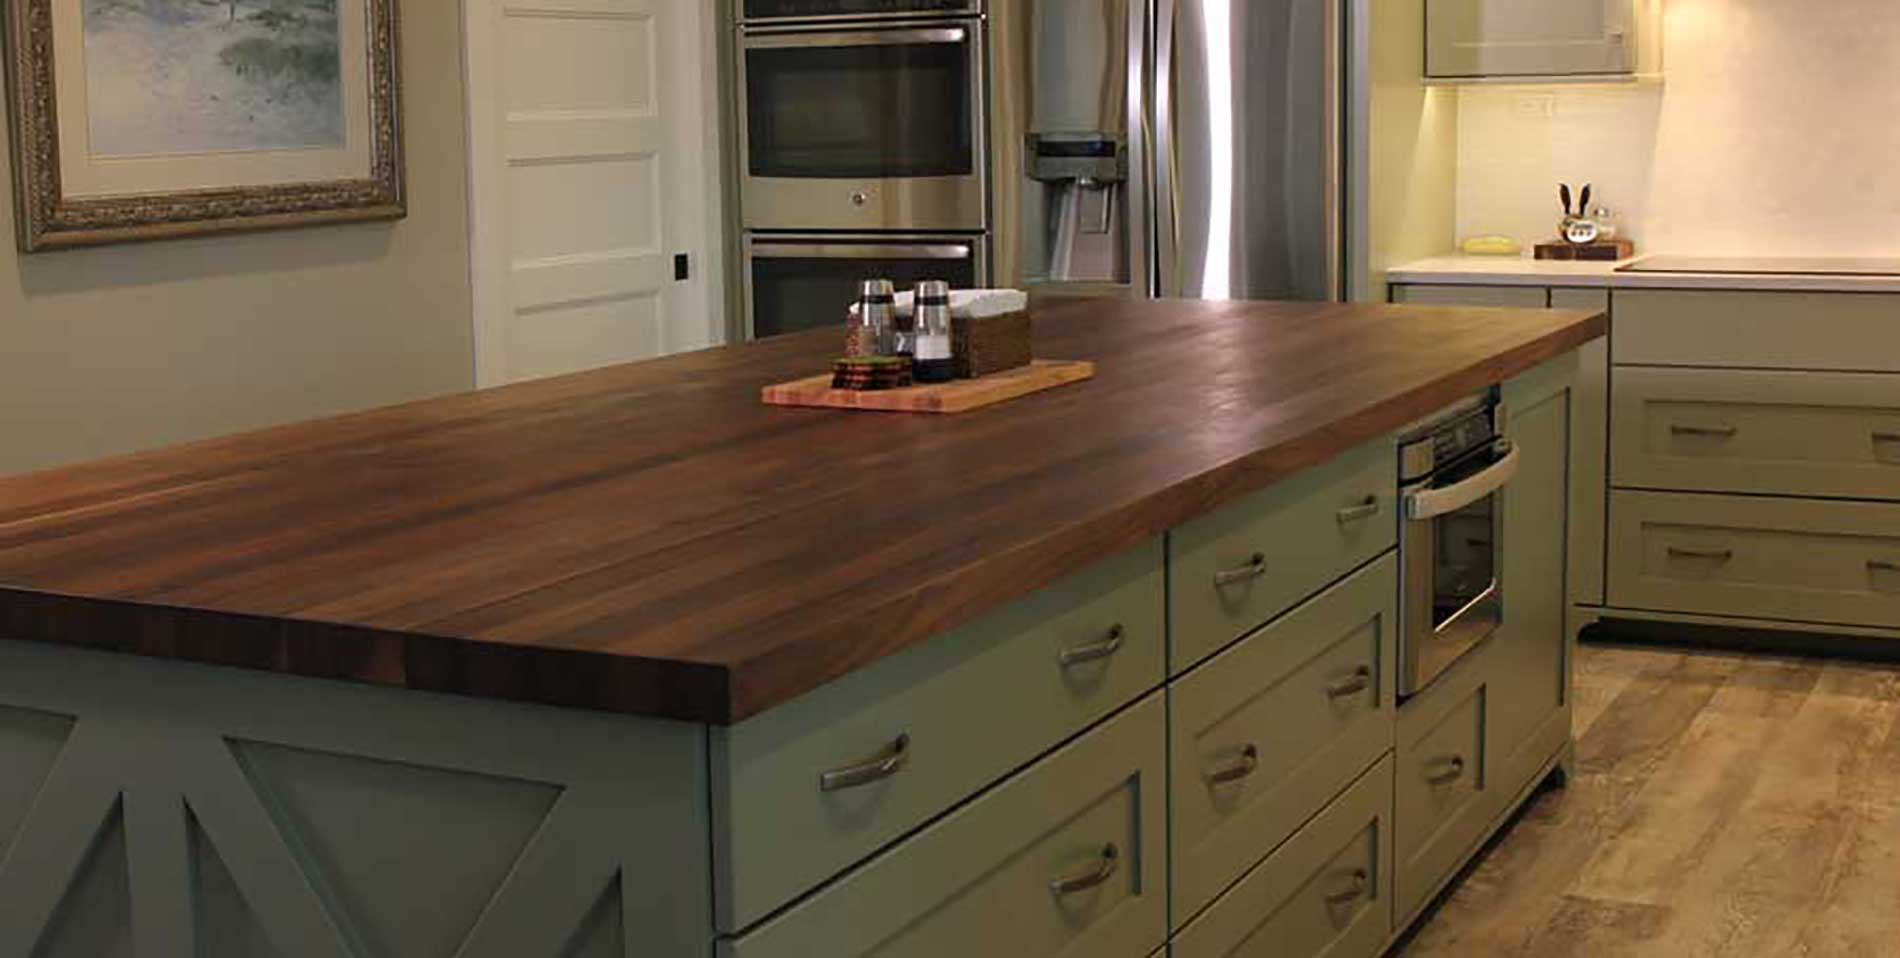 Charmant Black Walnut Kitchen Island   McClure Block Butcher Block And Hardwood  KItchen Counter Tops And Hardwood Kitchen Islands, Butcher Block Chopping  Blocks And ...